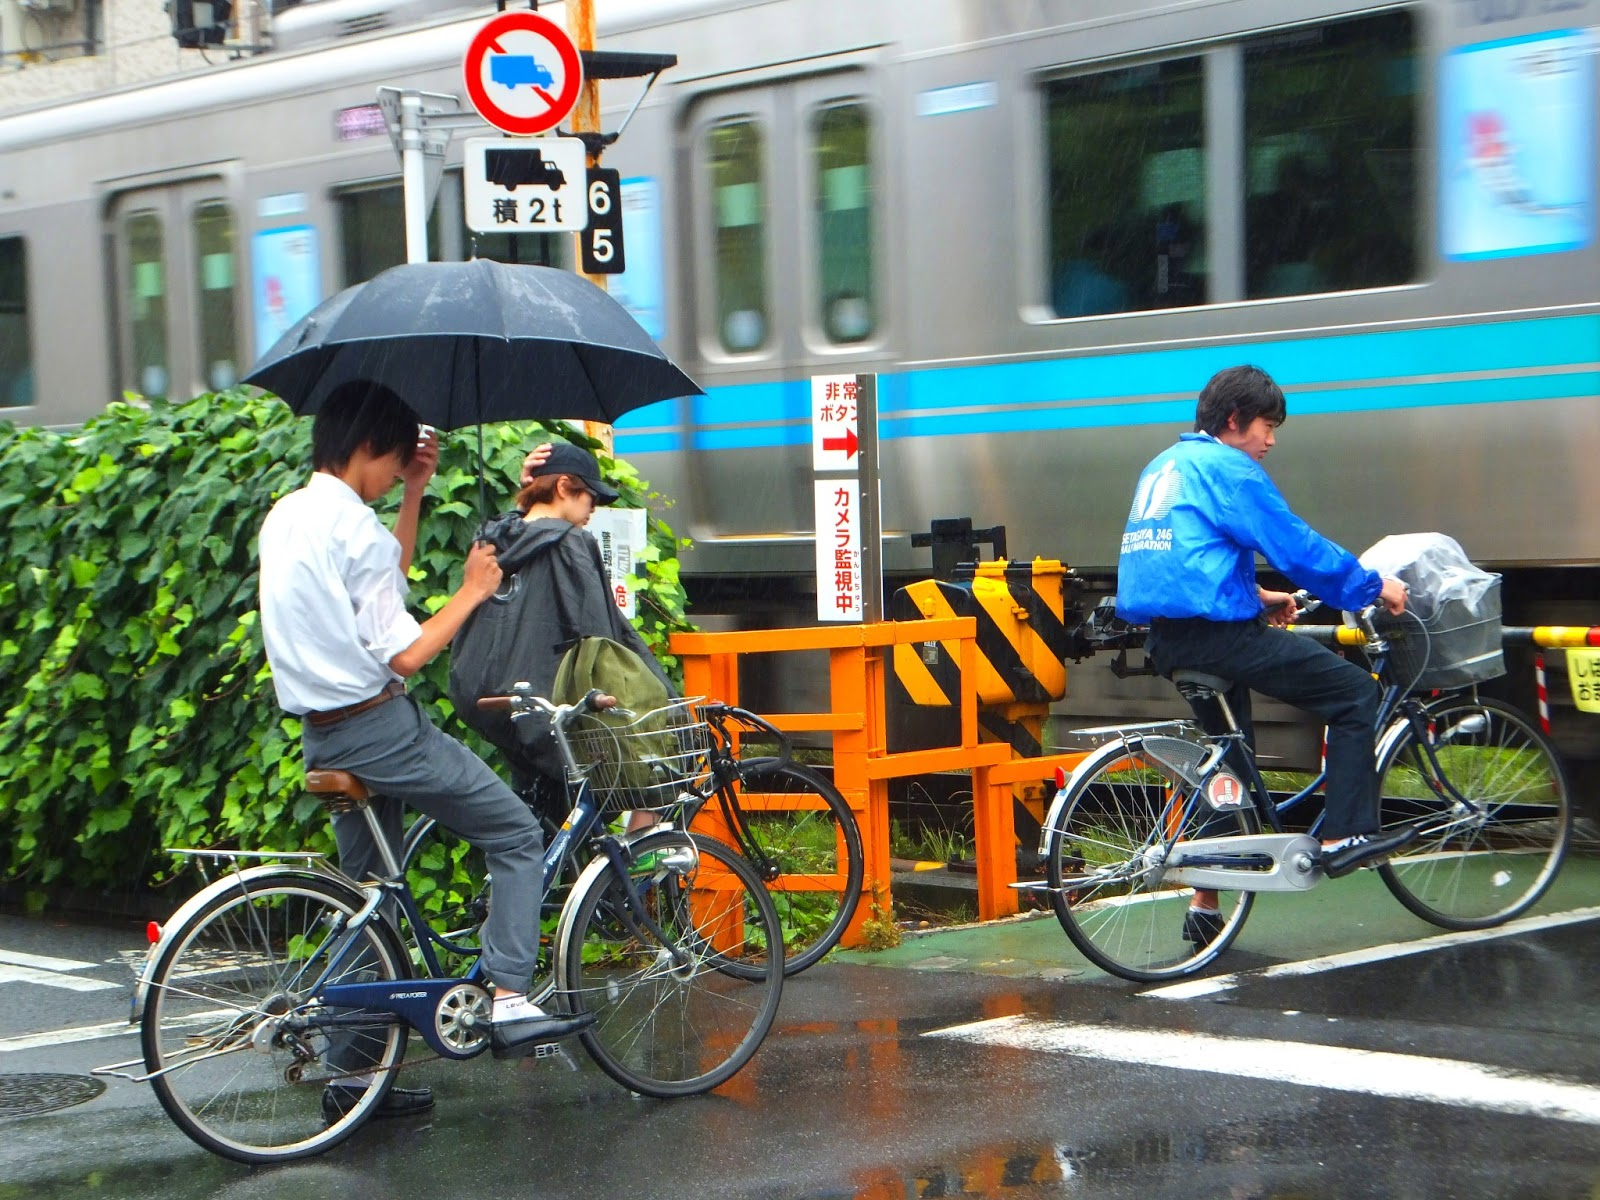 http://www.tokyobybike.com/2017/06/how-can-tokyo-be-ranked-9th-most.html